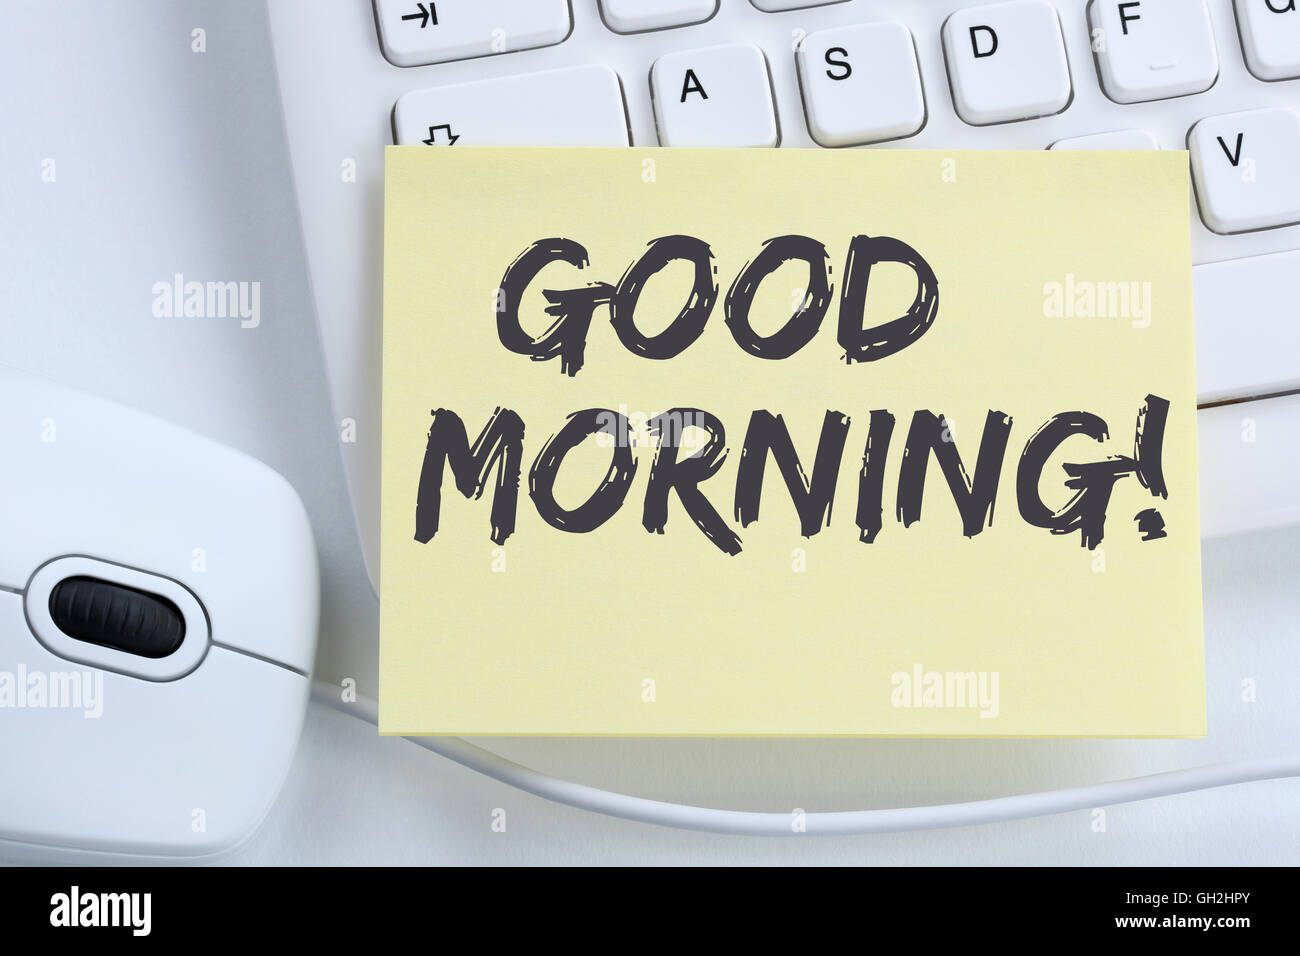 Good morning hello greeting welcome message business concept office computer keyboard - Stock Image